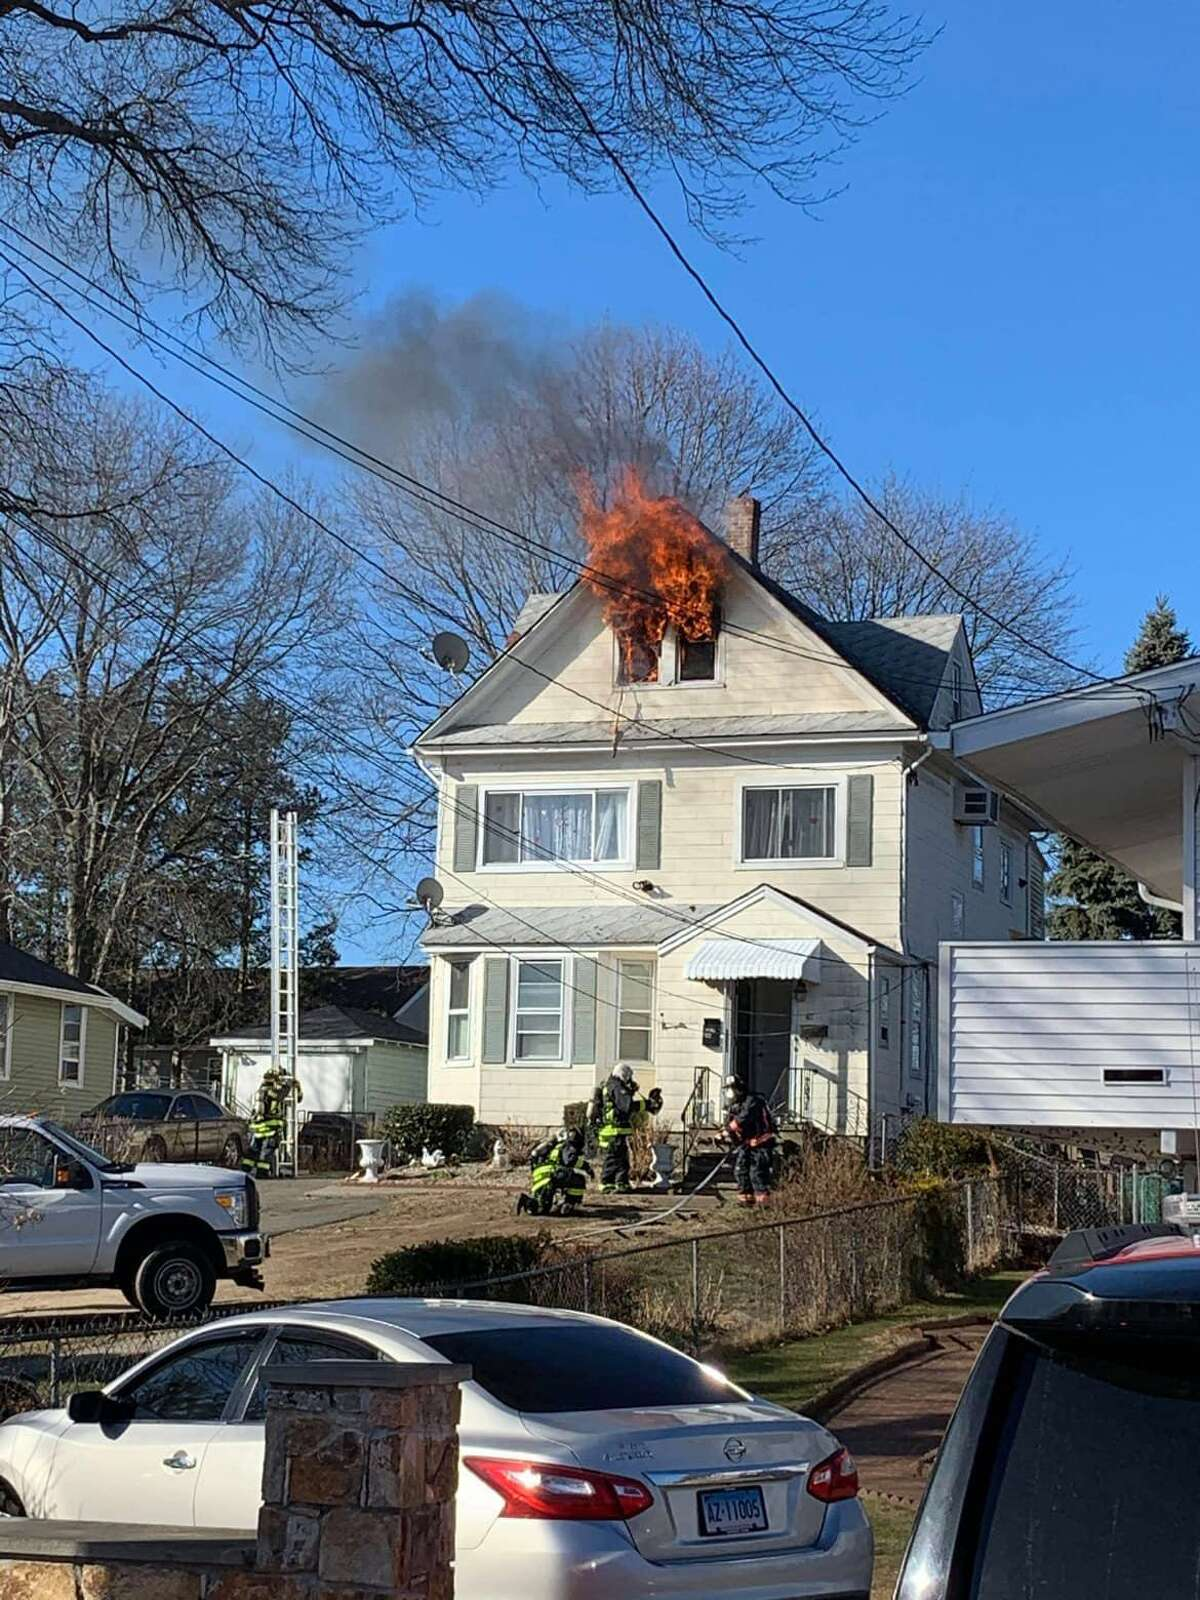 Firefighters at a Stratford, Conn., house fire on Sunday, Jan. 24, 2021.